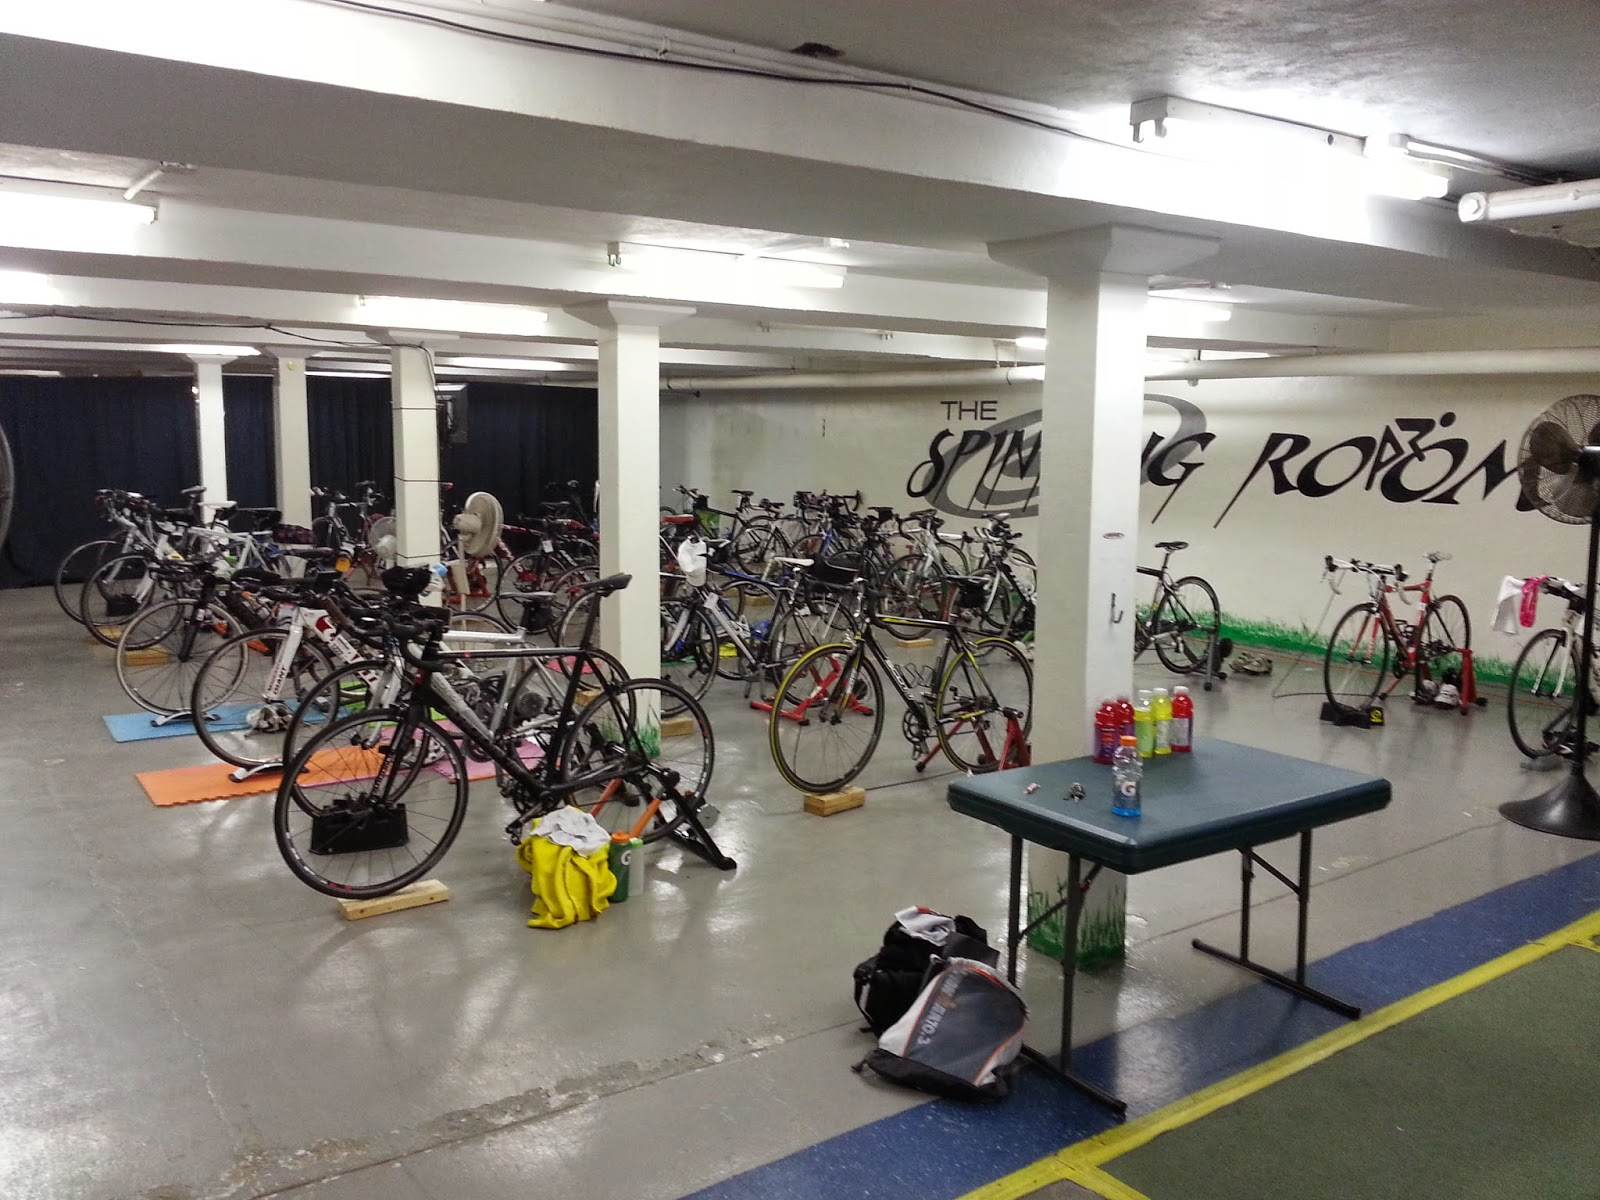 A window-less basement room with lots of bikes set up on trainers.